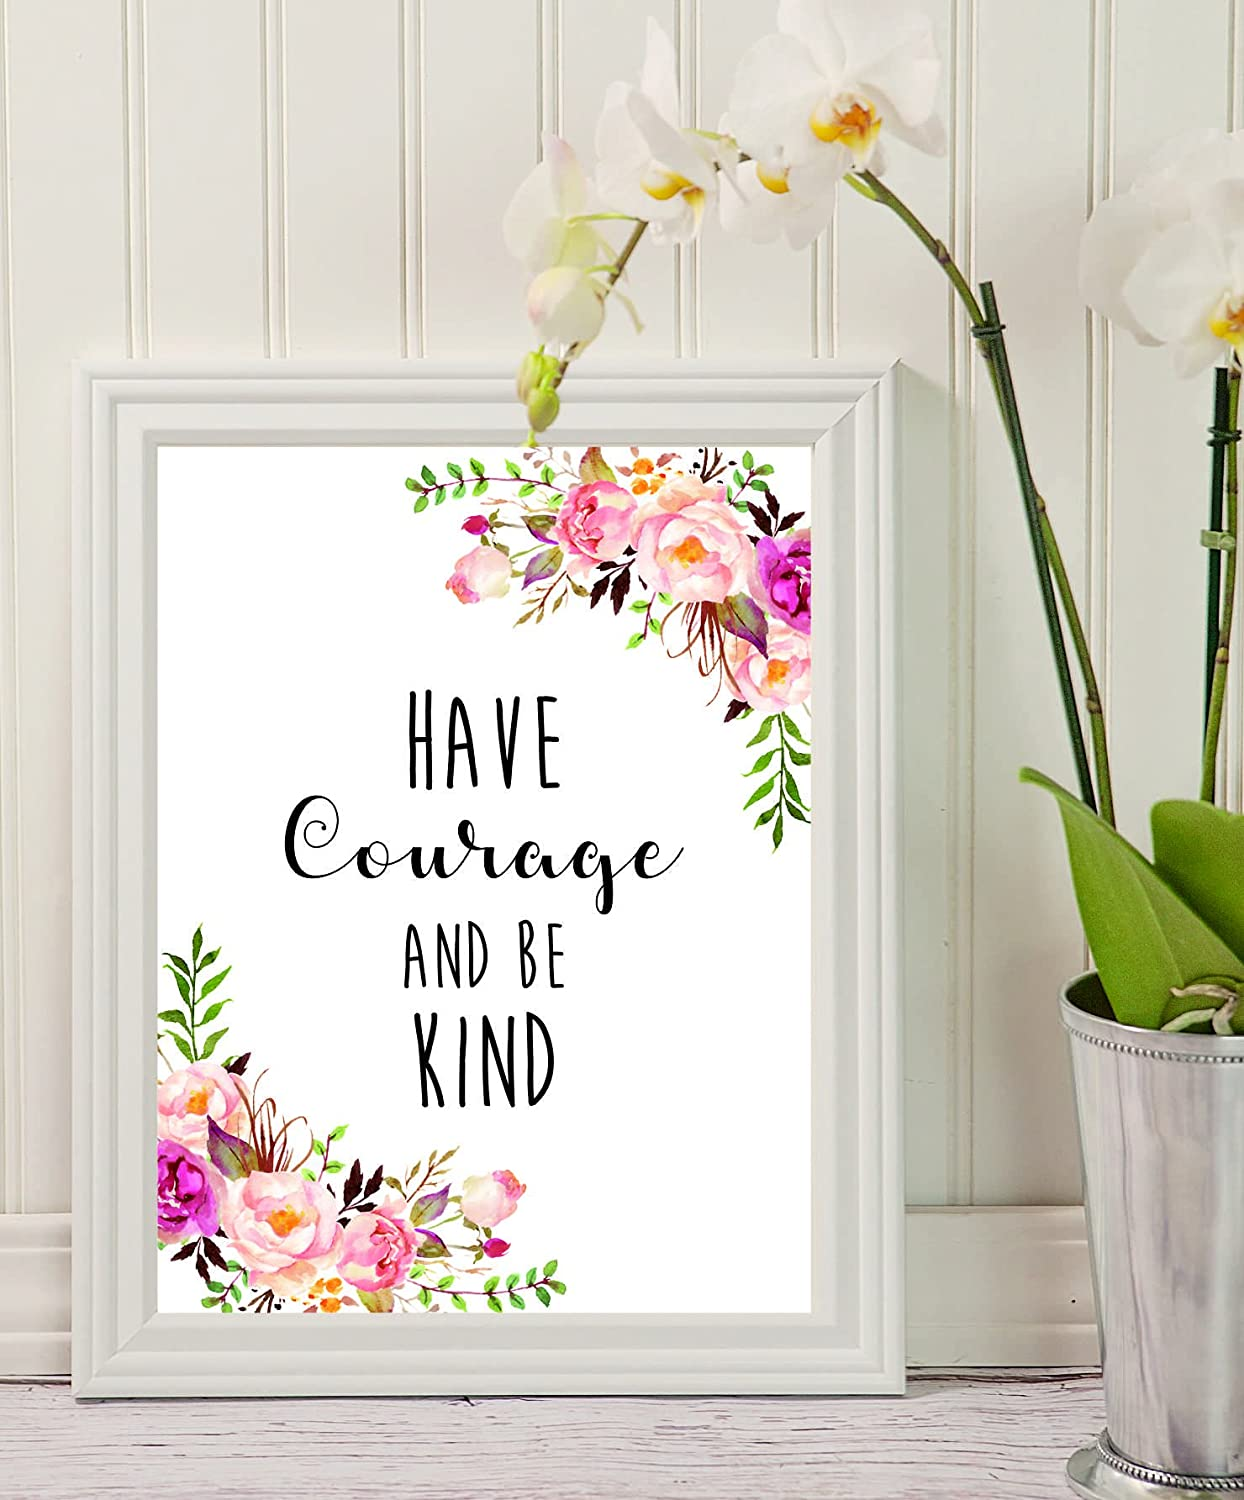 Have Courage and Be Kind Wall Decor teacher gift- small sign- Printable Quote Motivational Print Wall Art mom gift Living Room Decor Home Decor College Dorm Room Decorations